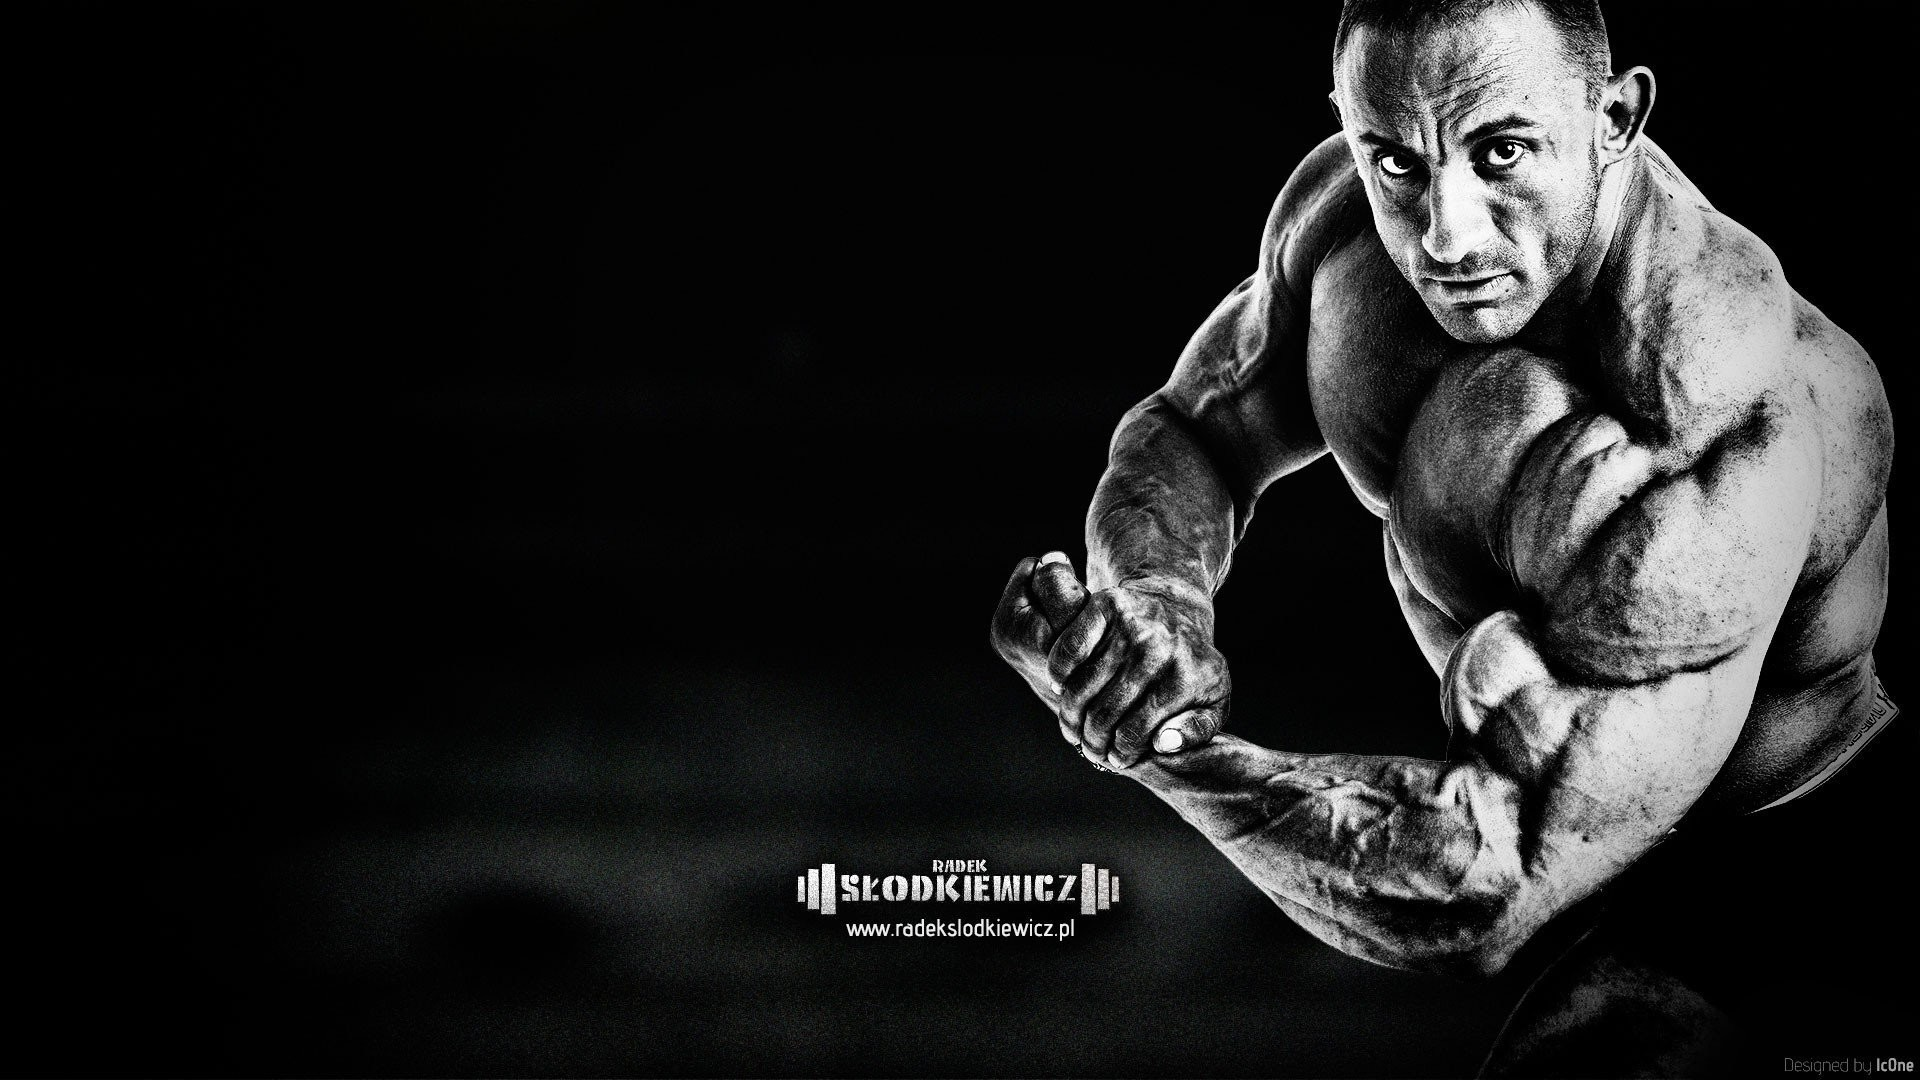 Res: 1920x1080, Body-building fitness muscle muscles weight lifting Bodybuilding (21)  wallpaper |  | 415551 | WallpaperUP